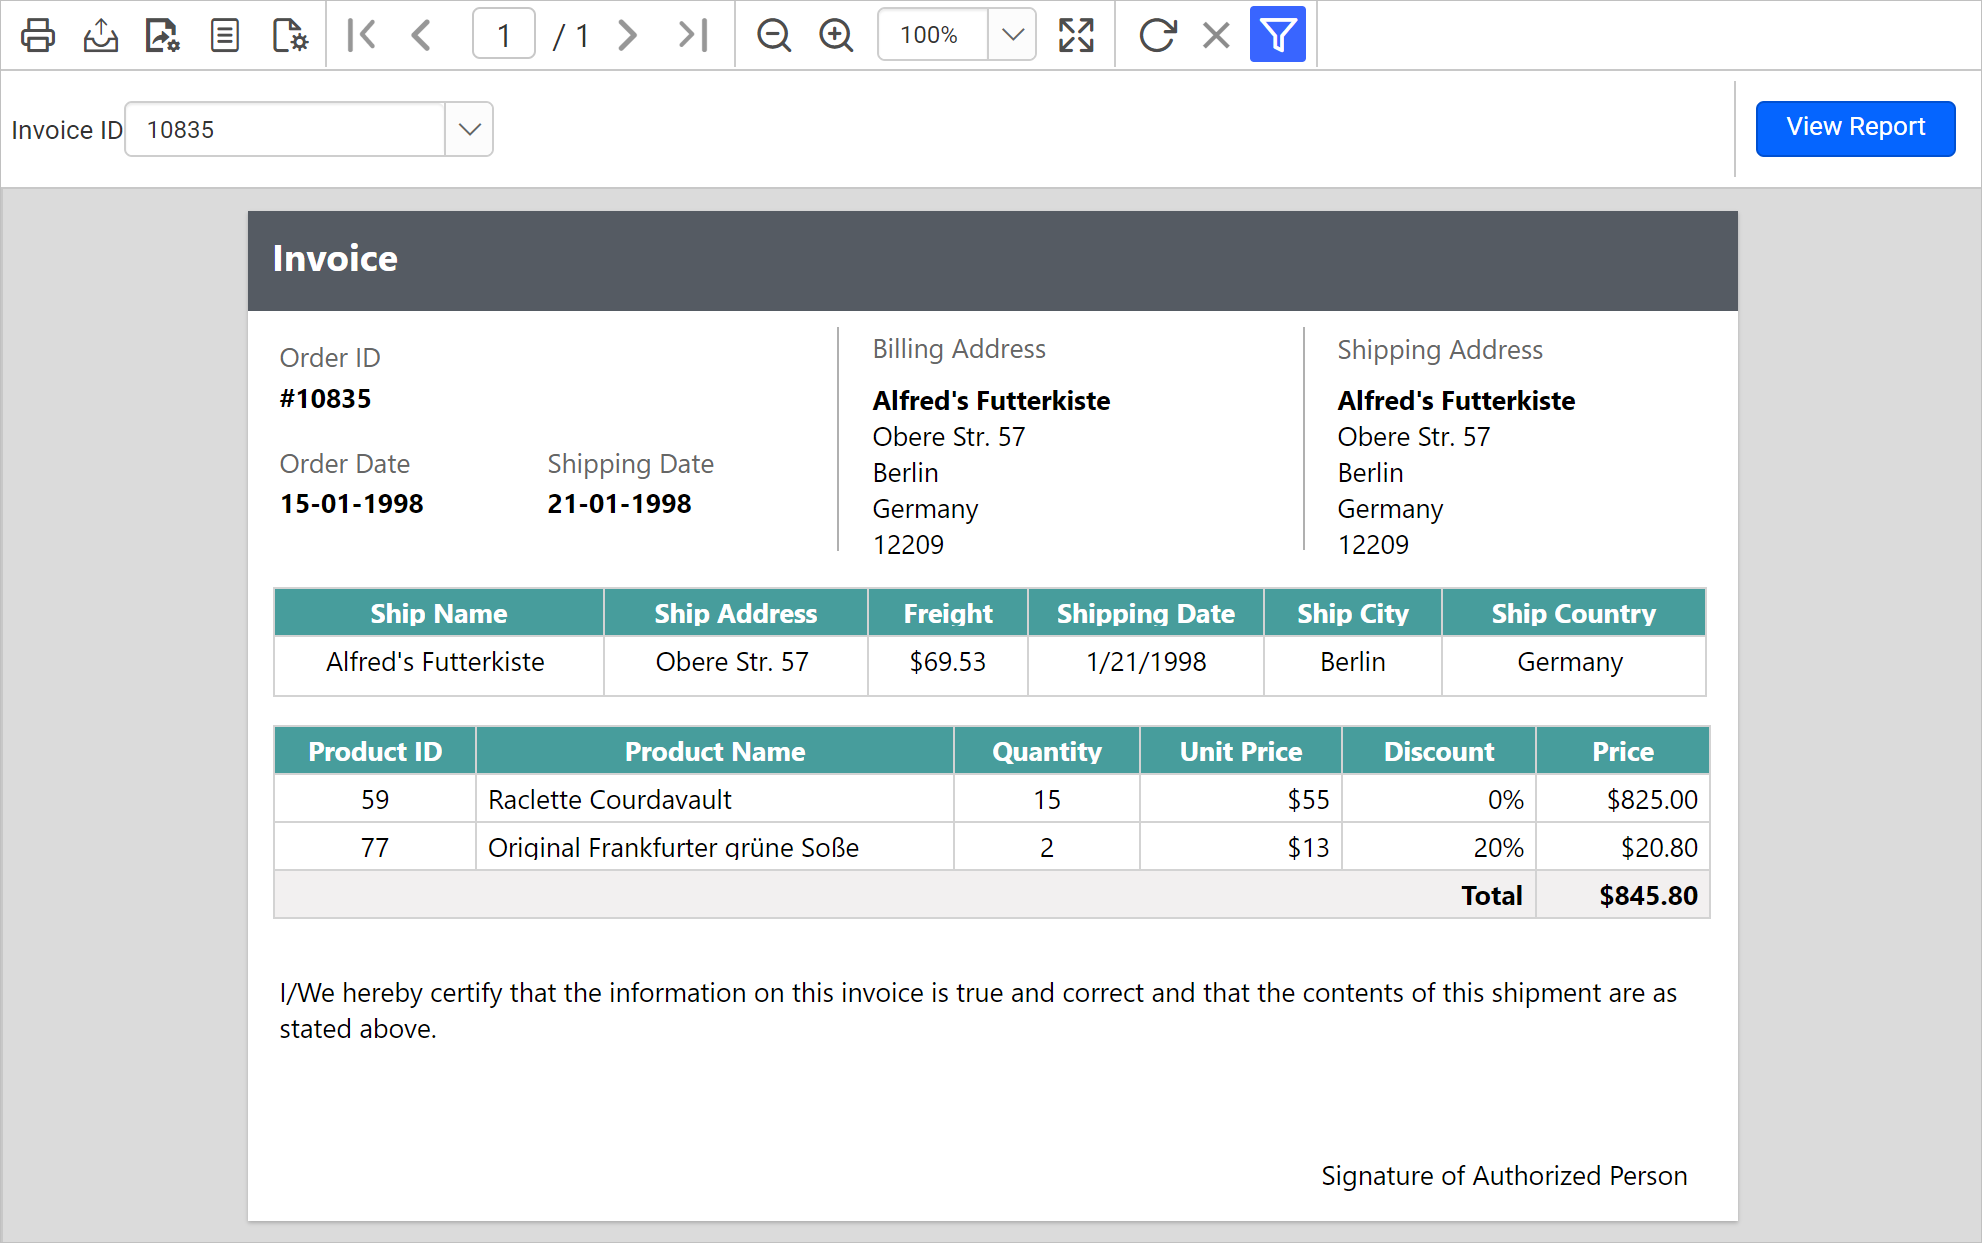 Report displaying invoice details